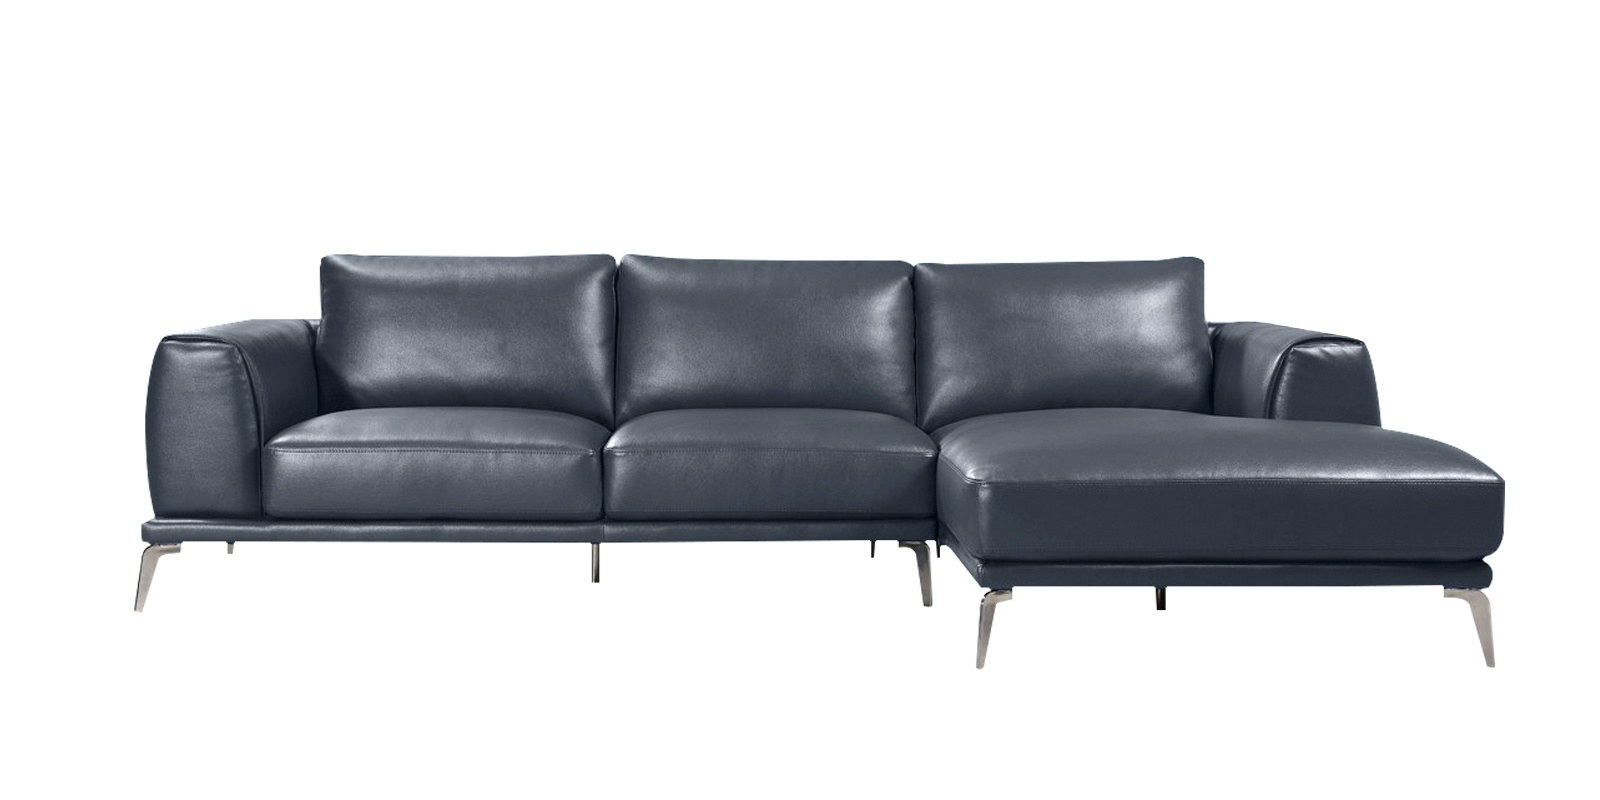 3 Seater Sofa Bed Dreams Specy Three Seater Leatherette Sofa With Lounger In Blue